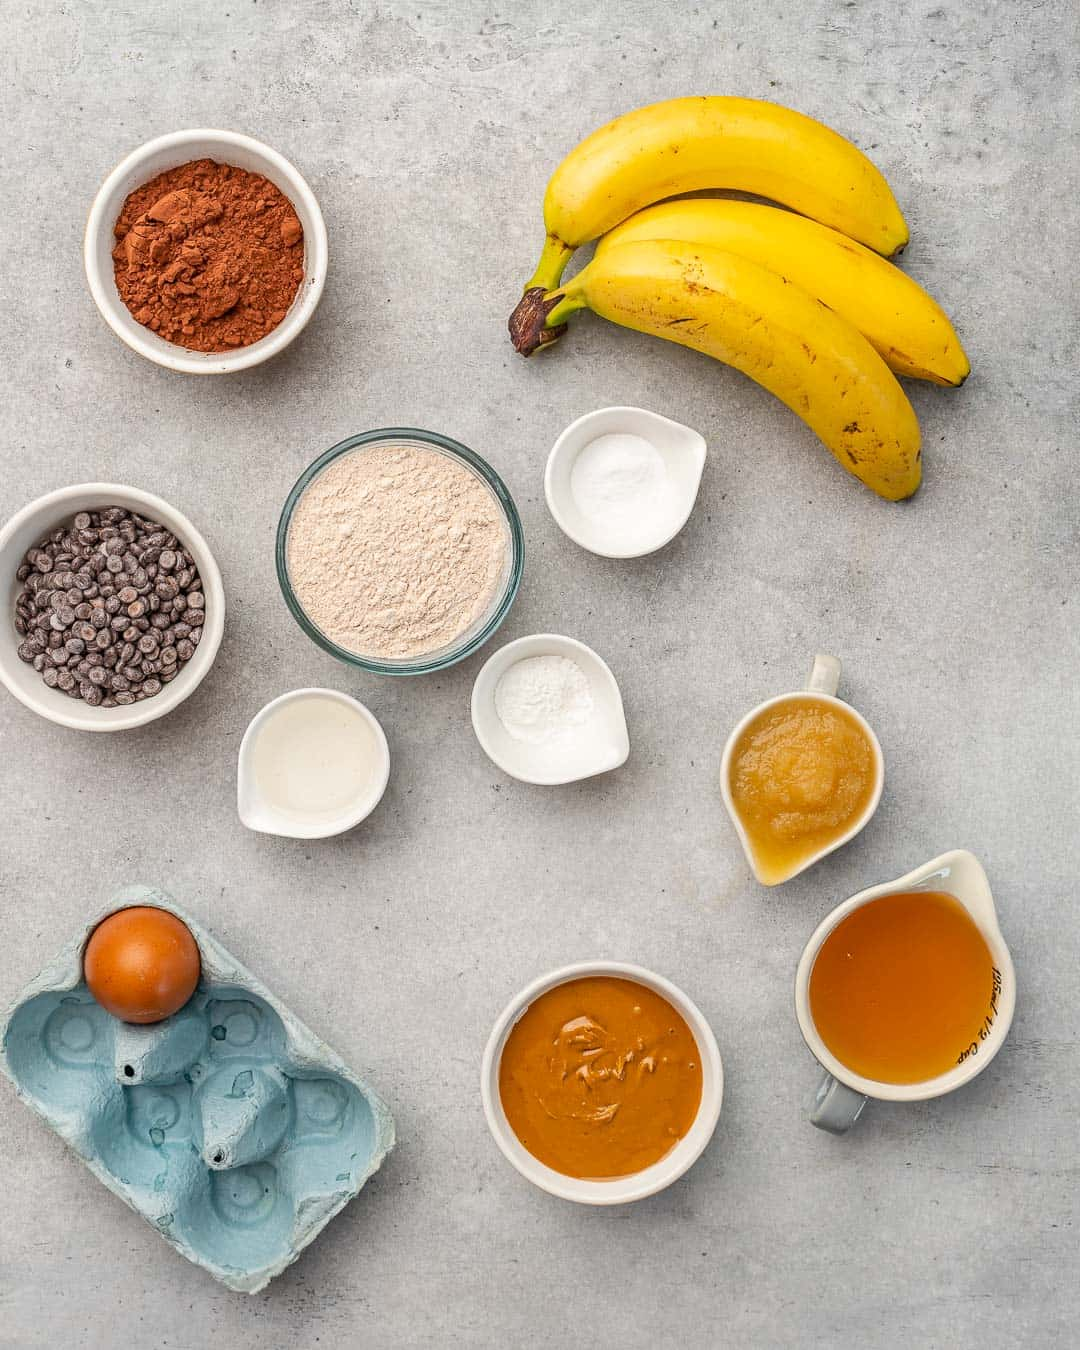 Ingredients for chocolate peanut butter banana muffins on counter